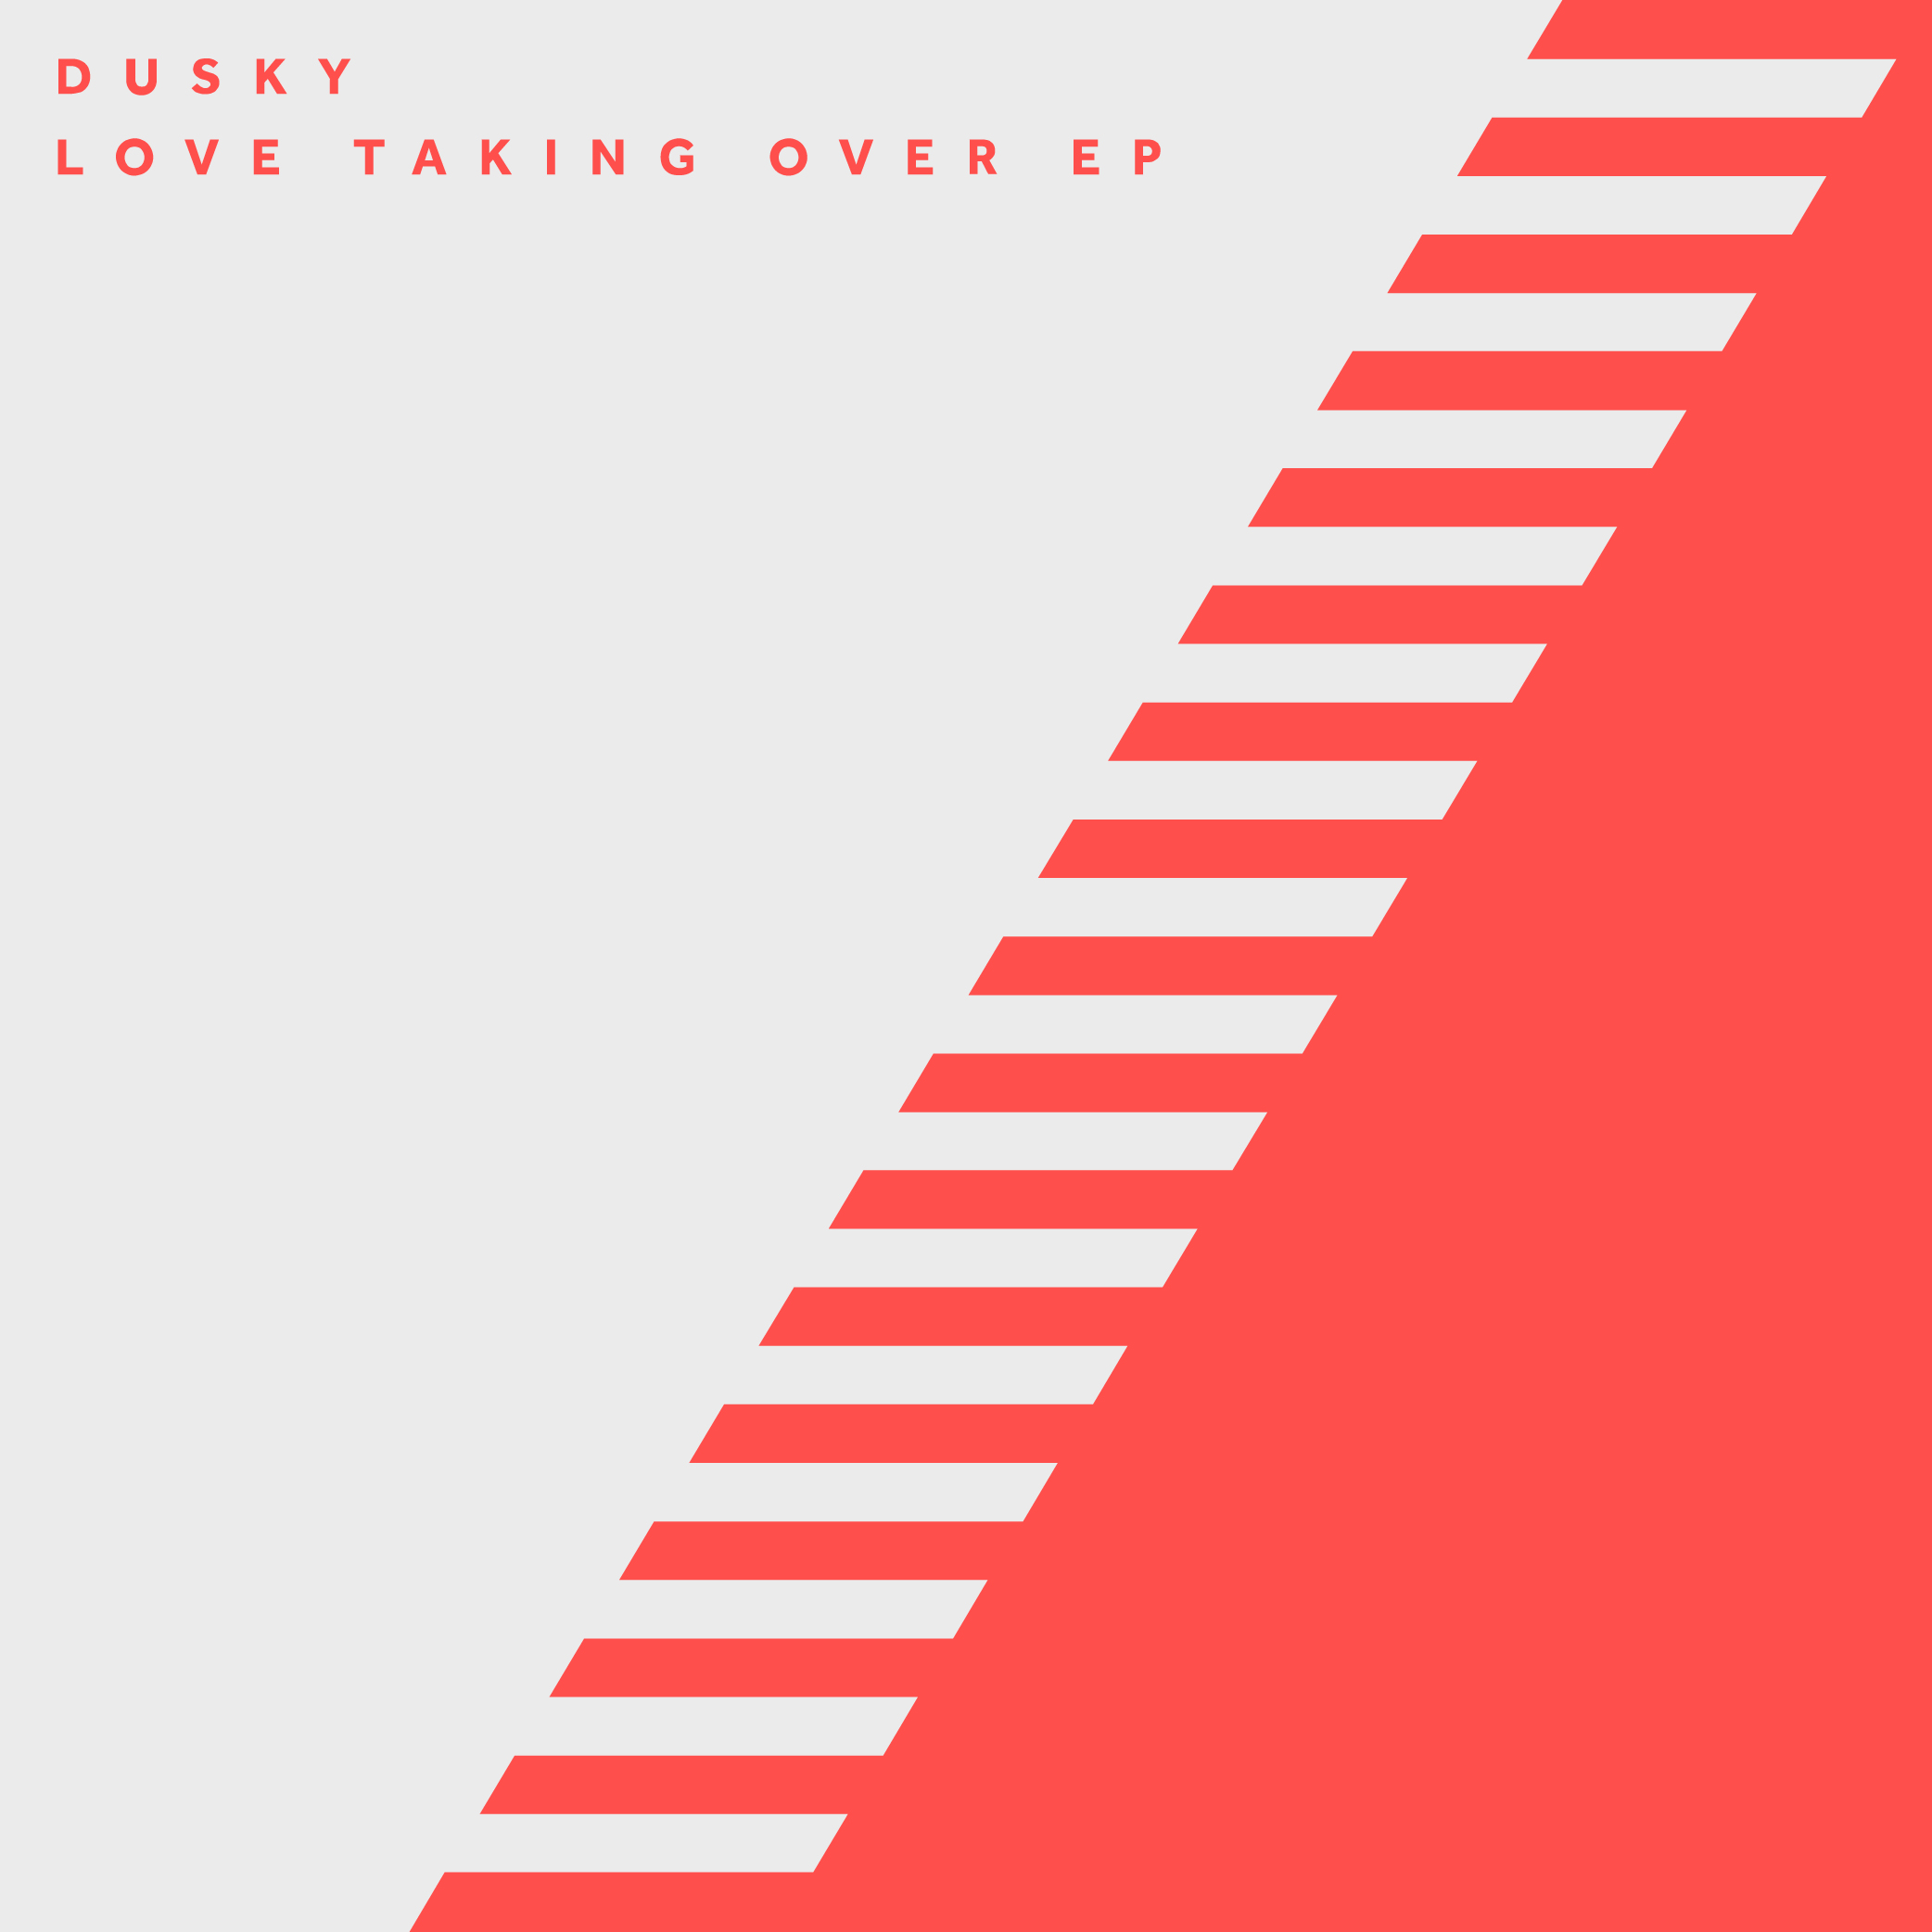 DUSKY – LOVE TAKING OVER EP